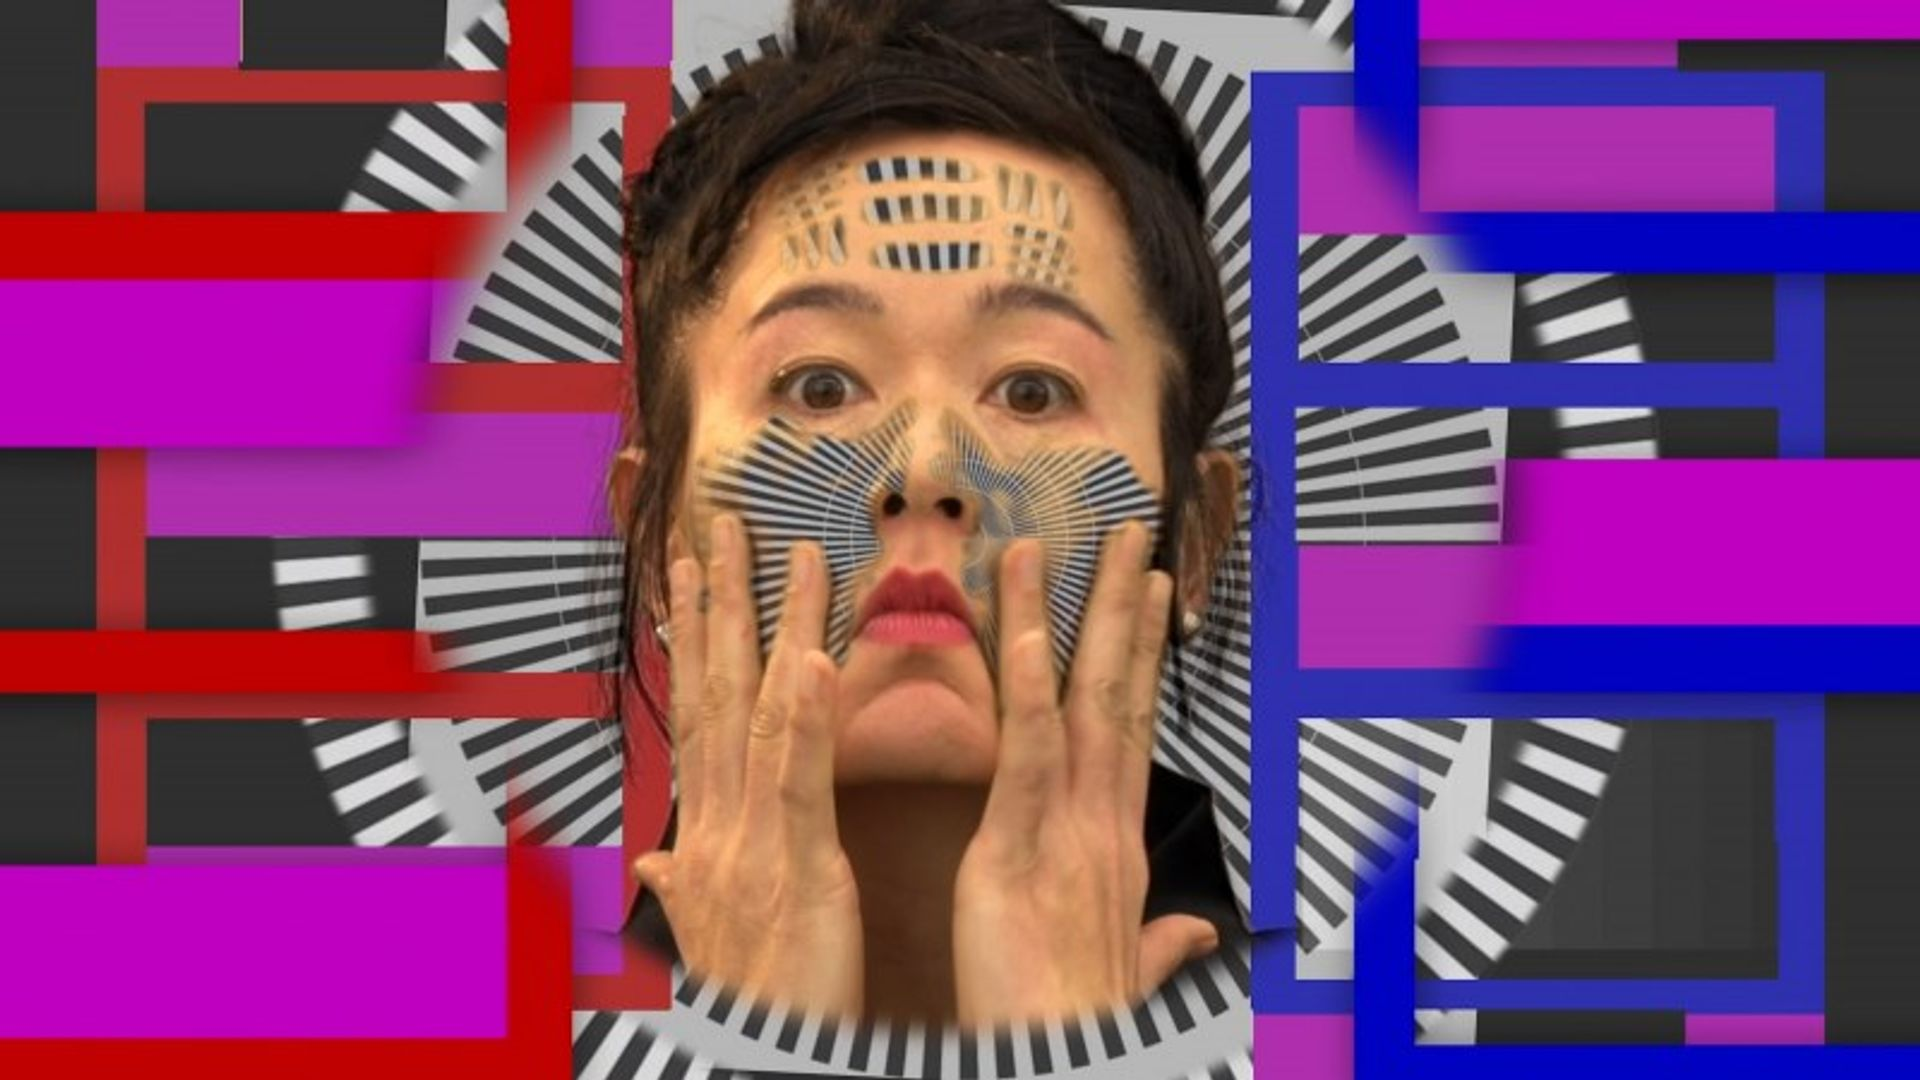 Hito Steyerl, How Not to Be Seen: A Fucking Didactic Educational .MOV File, 2013 (still) Courtesy of the Artist, Andrew Kreps Gallery (New York) and Esther Schipper Gallery (Berlin)